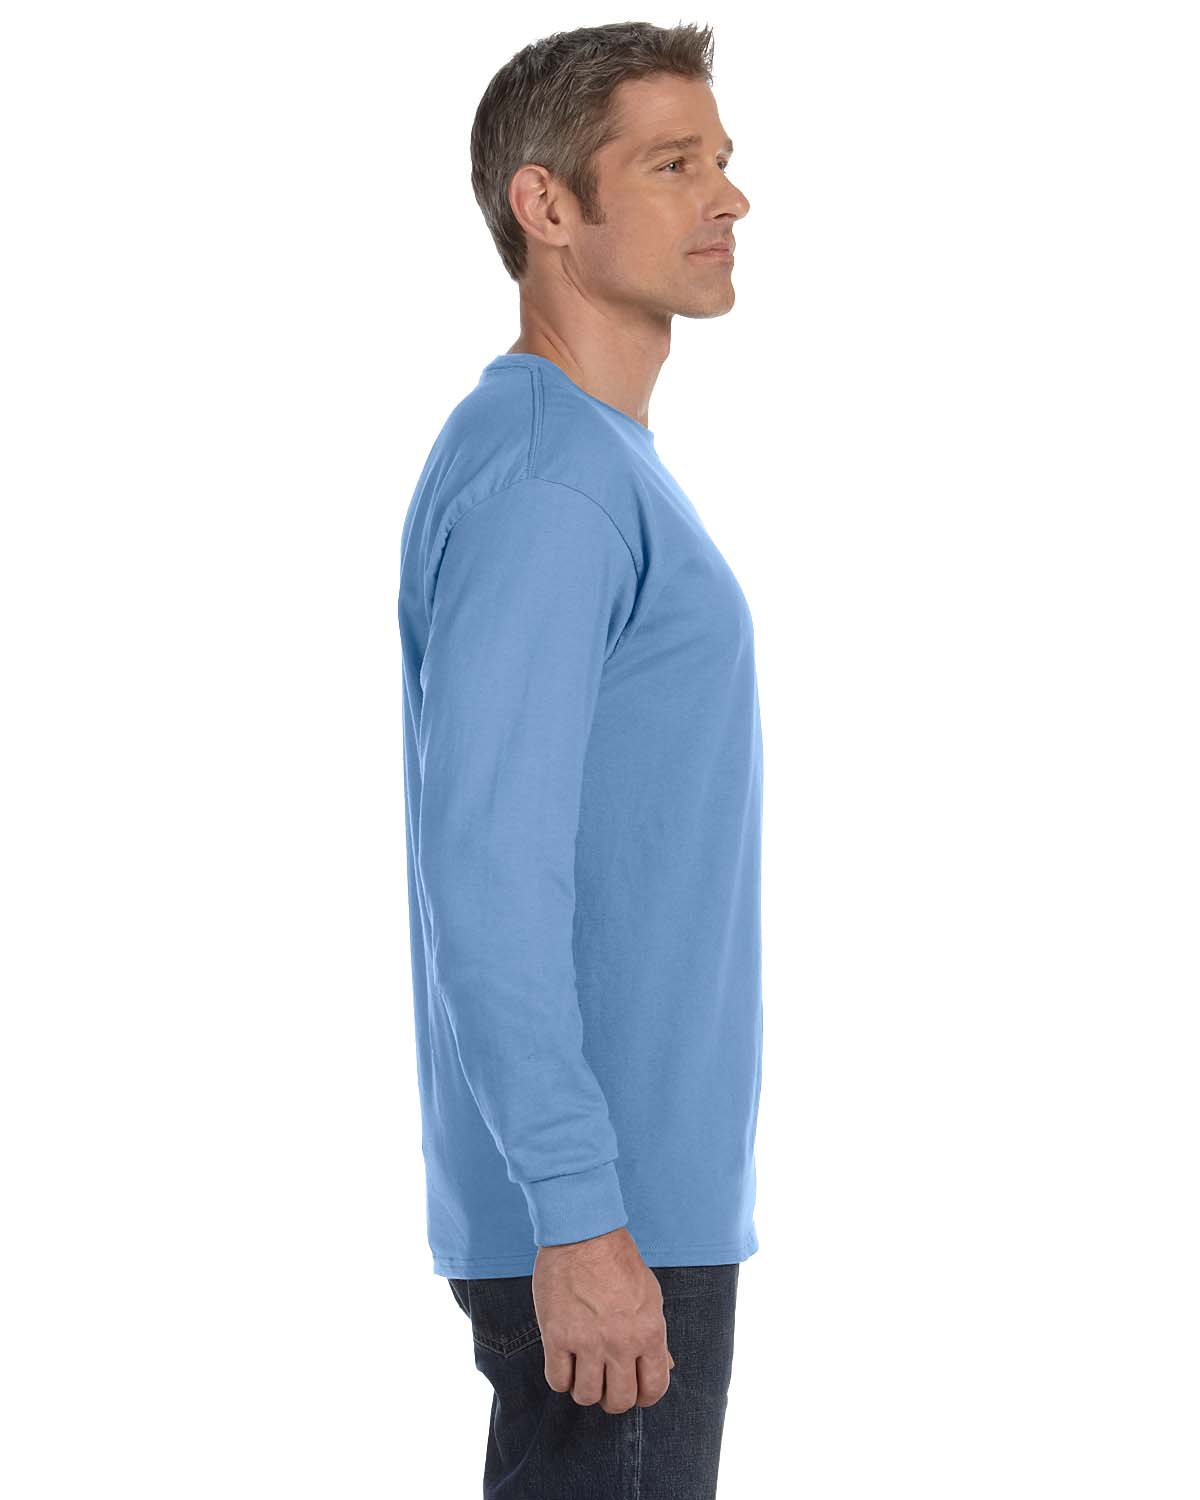 Gildan-Mens-T-Shirt-Long-Sleeve-Heavy-Cotton-5-3-oz-S-XL-R-G540-5400 thumbnail 15